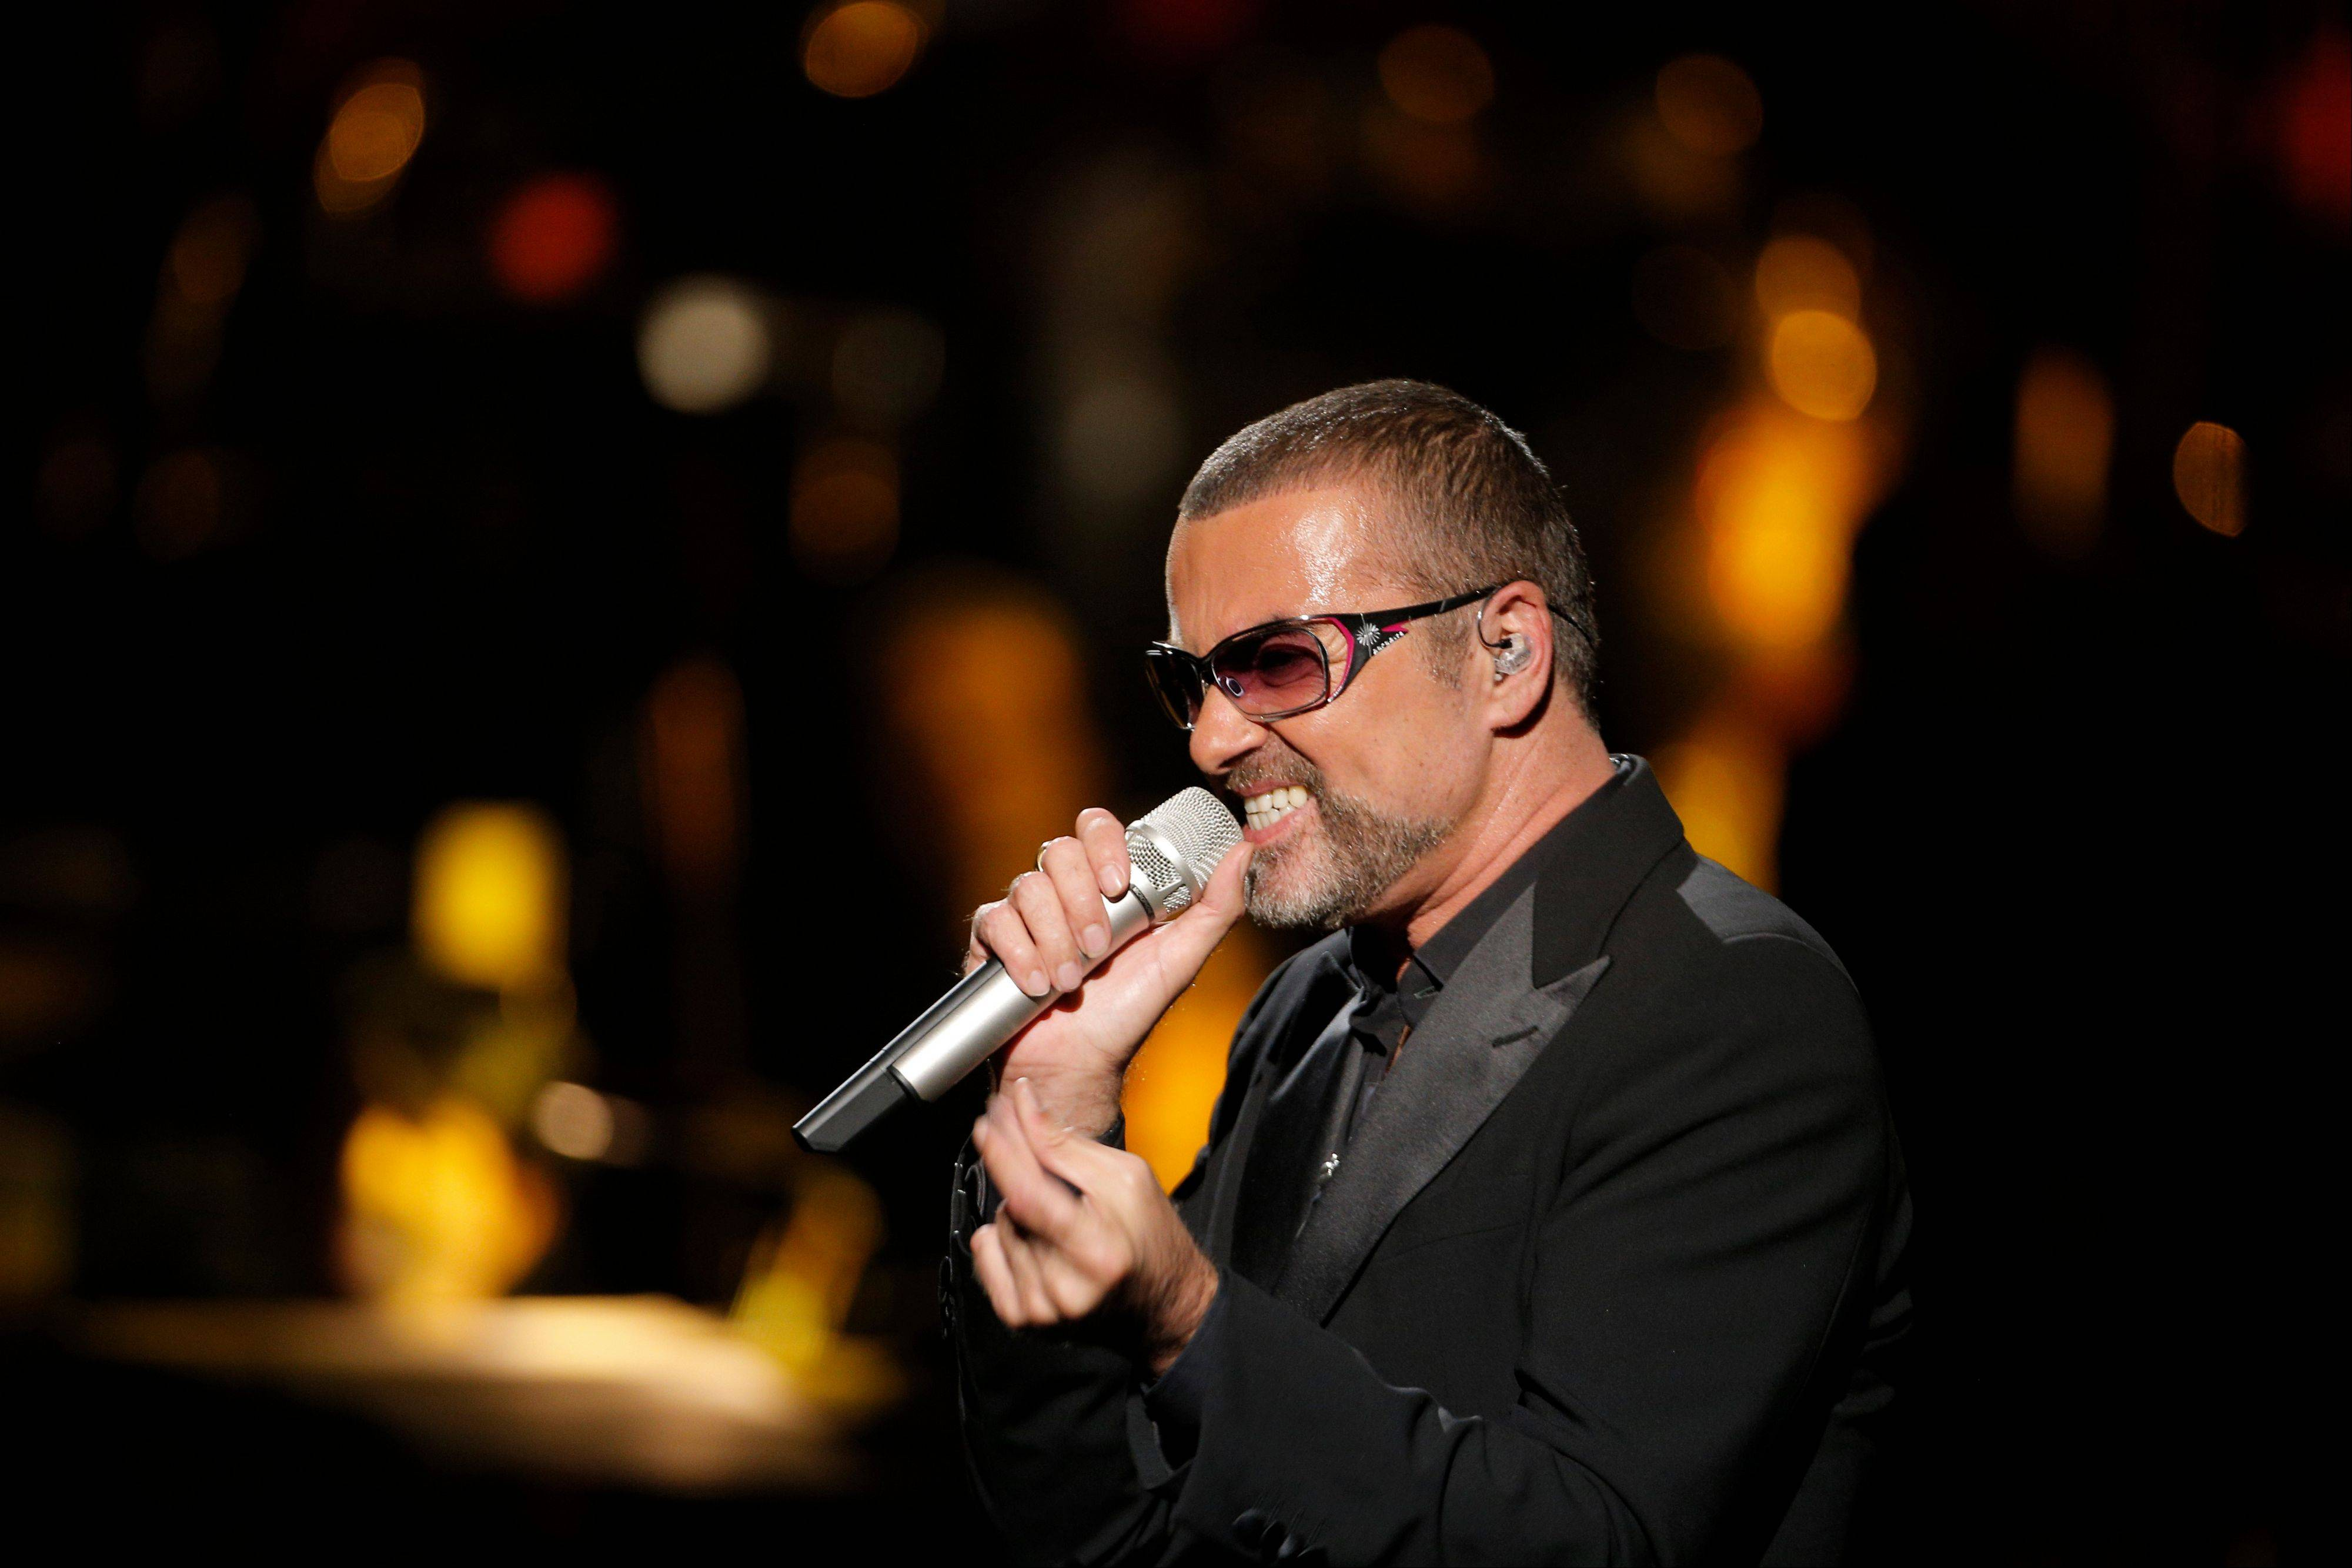 George Michael's publicist says the singer is being treated for minor injuries after he was a passenger in a car crash Thursday night.